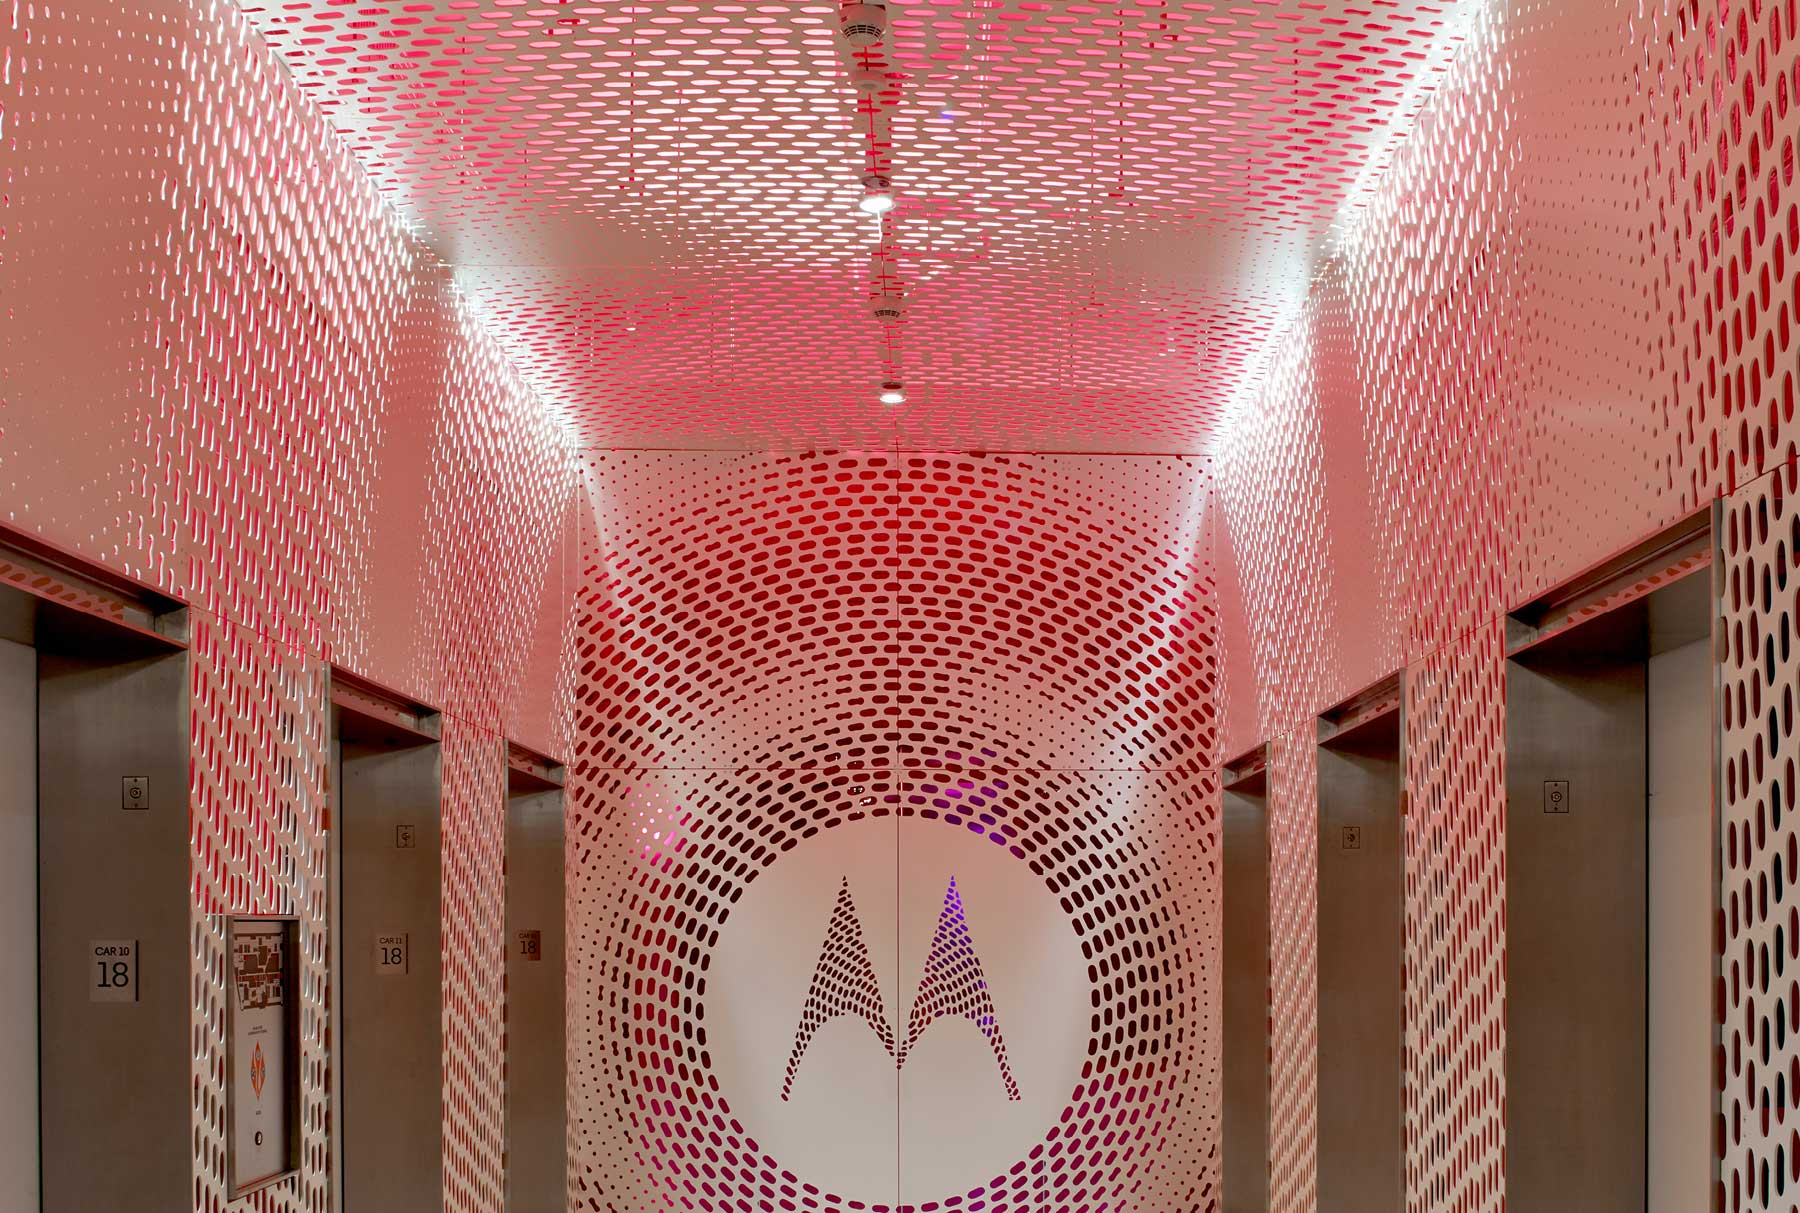 Arktura Graphic Perf® Scripted for Motorola elevator lobby